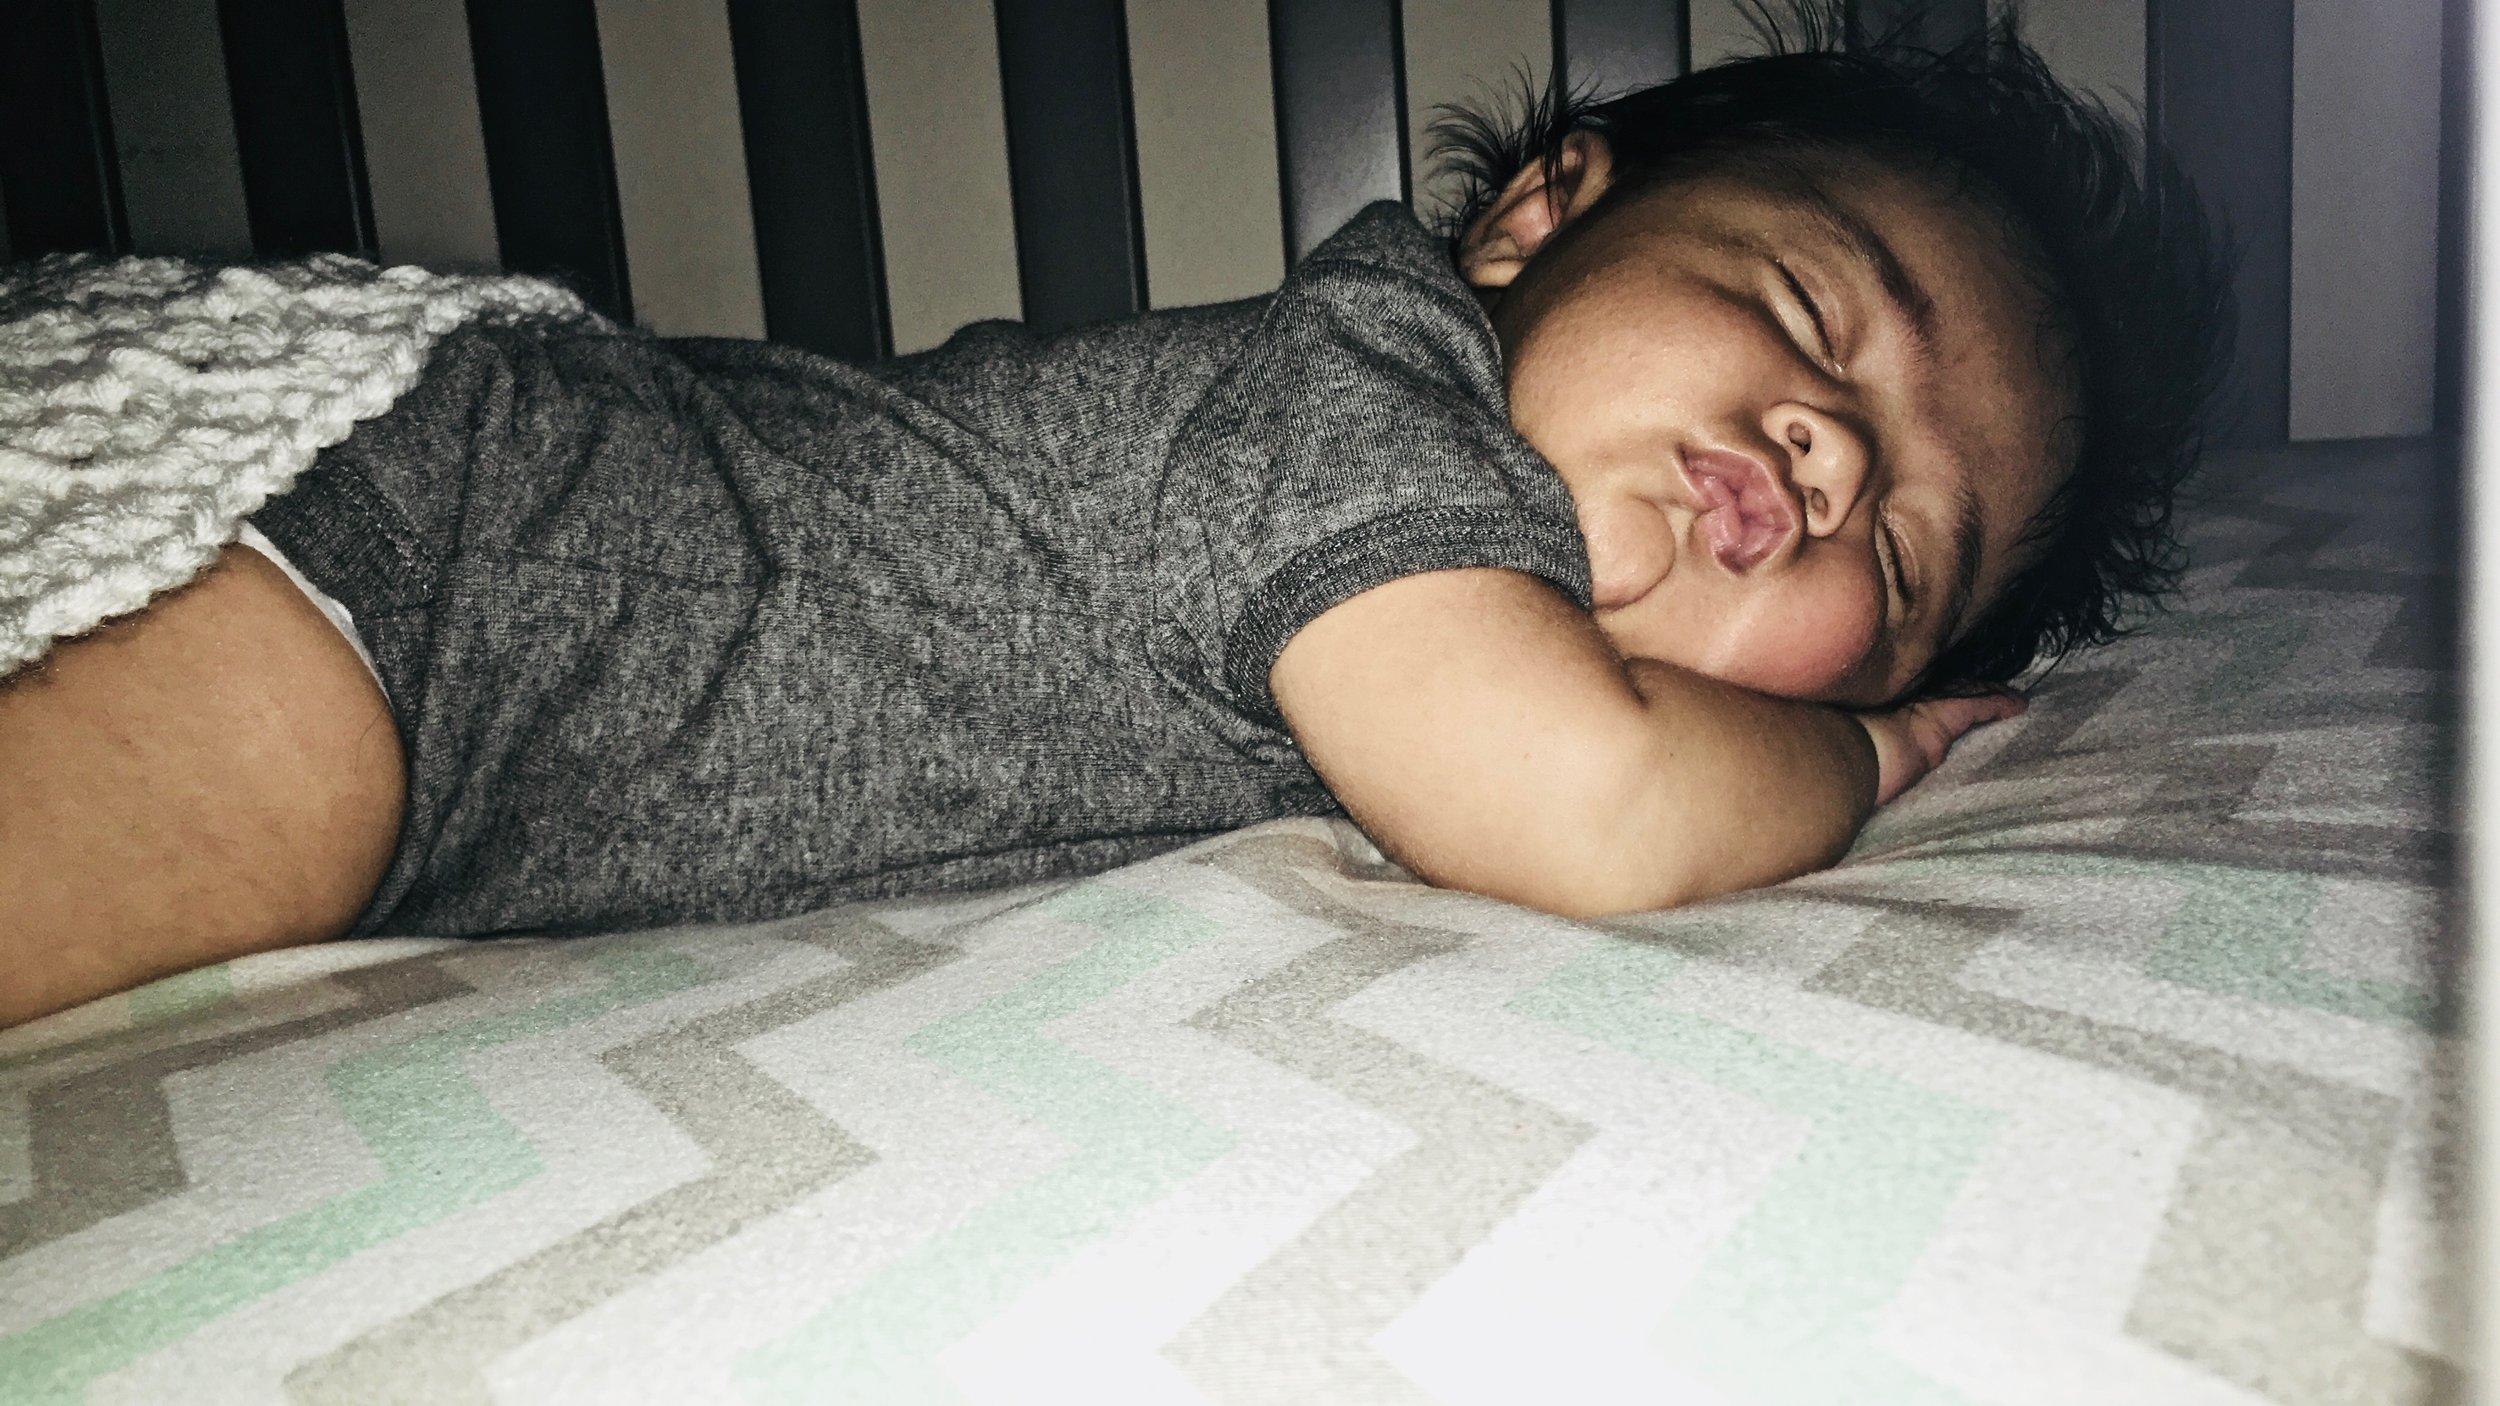 11 Solutions and Remedies for Reflux in Infants. Help Your Baby Spit Up Less and Sleep Longer